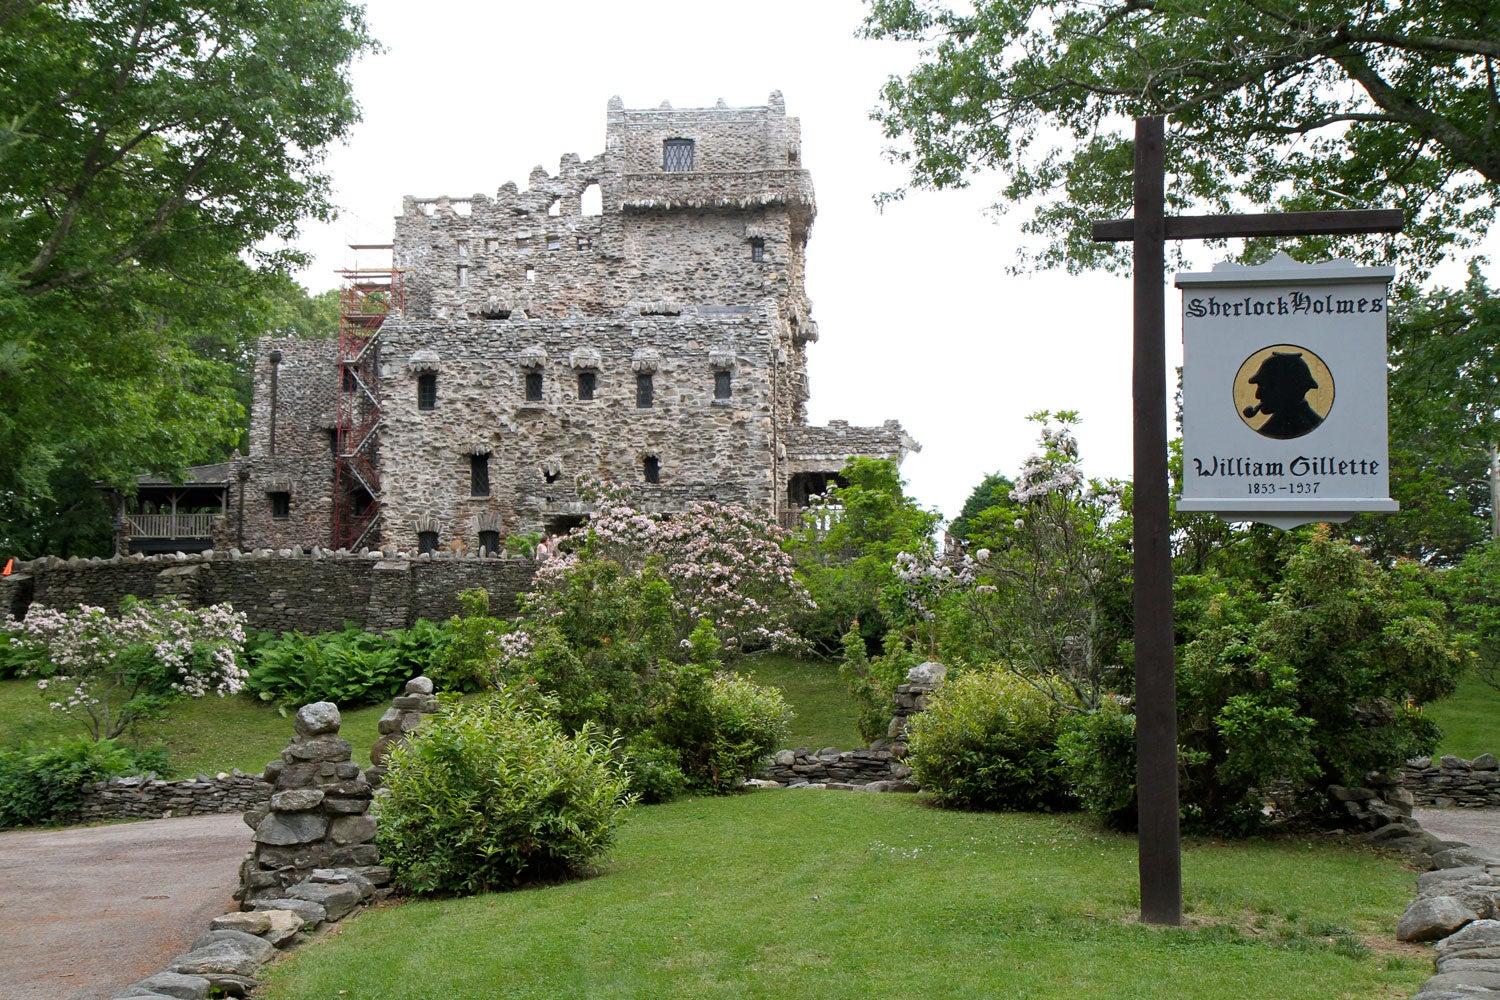 side view of gillette castle grounds, featuring memorial for william gillette